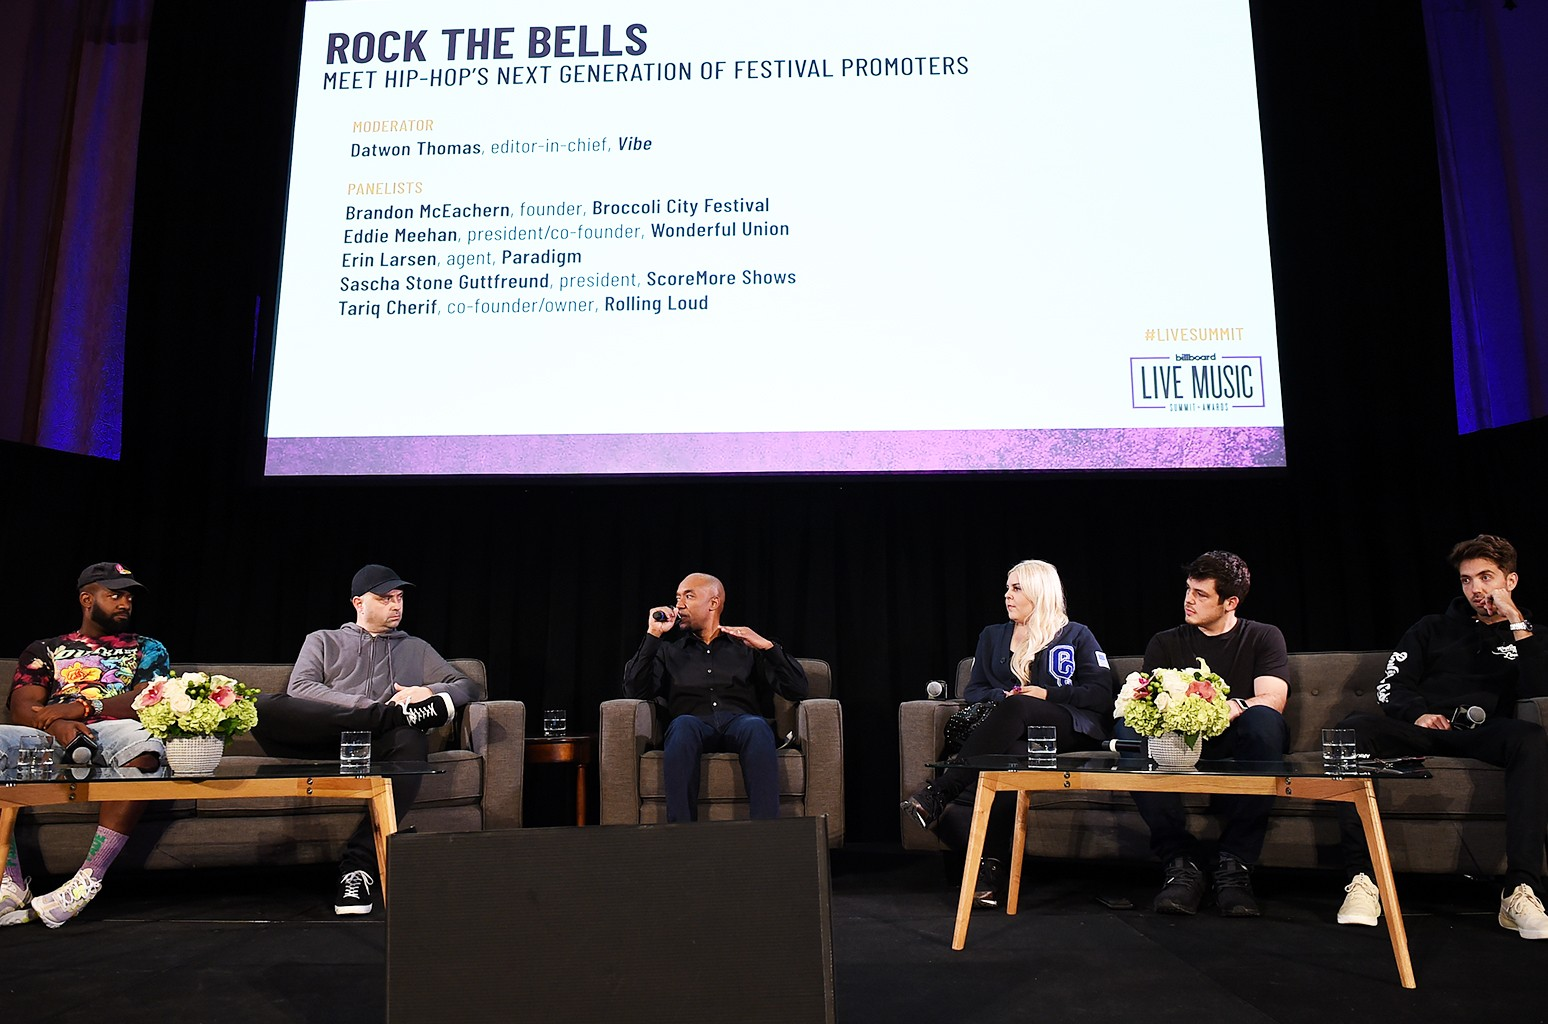 'Rock the Bells: Meet Hip-Hop's Next Generation of Festival Promoters' panel during the 2018 Billboard Live Music Summit + Awards at the Montage Beverly Hills on Nov. 14, 2018 in Beverly Hills, Calif.